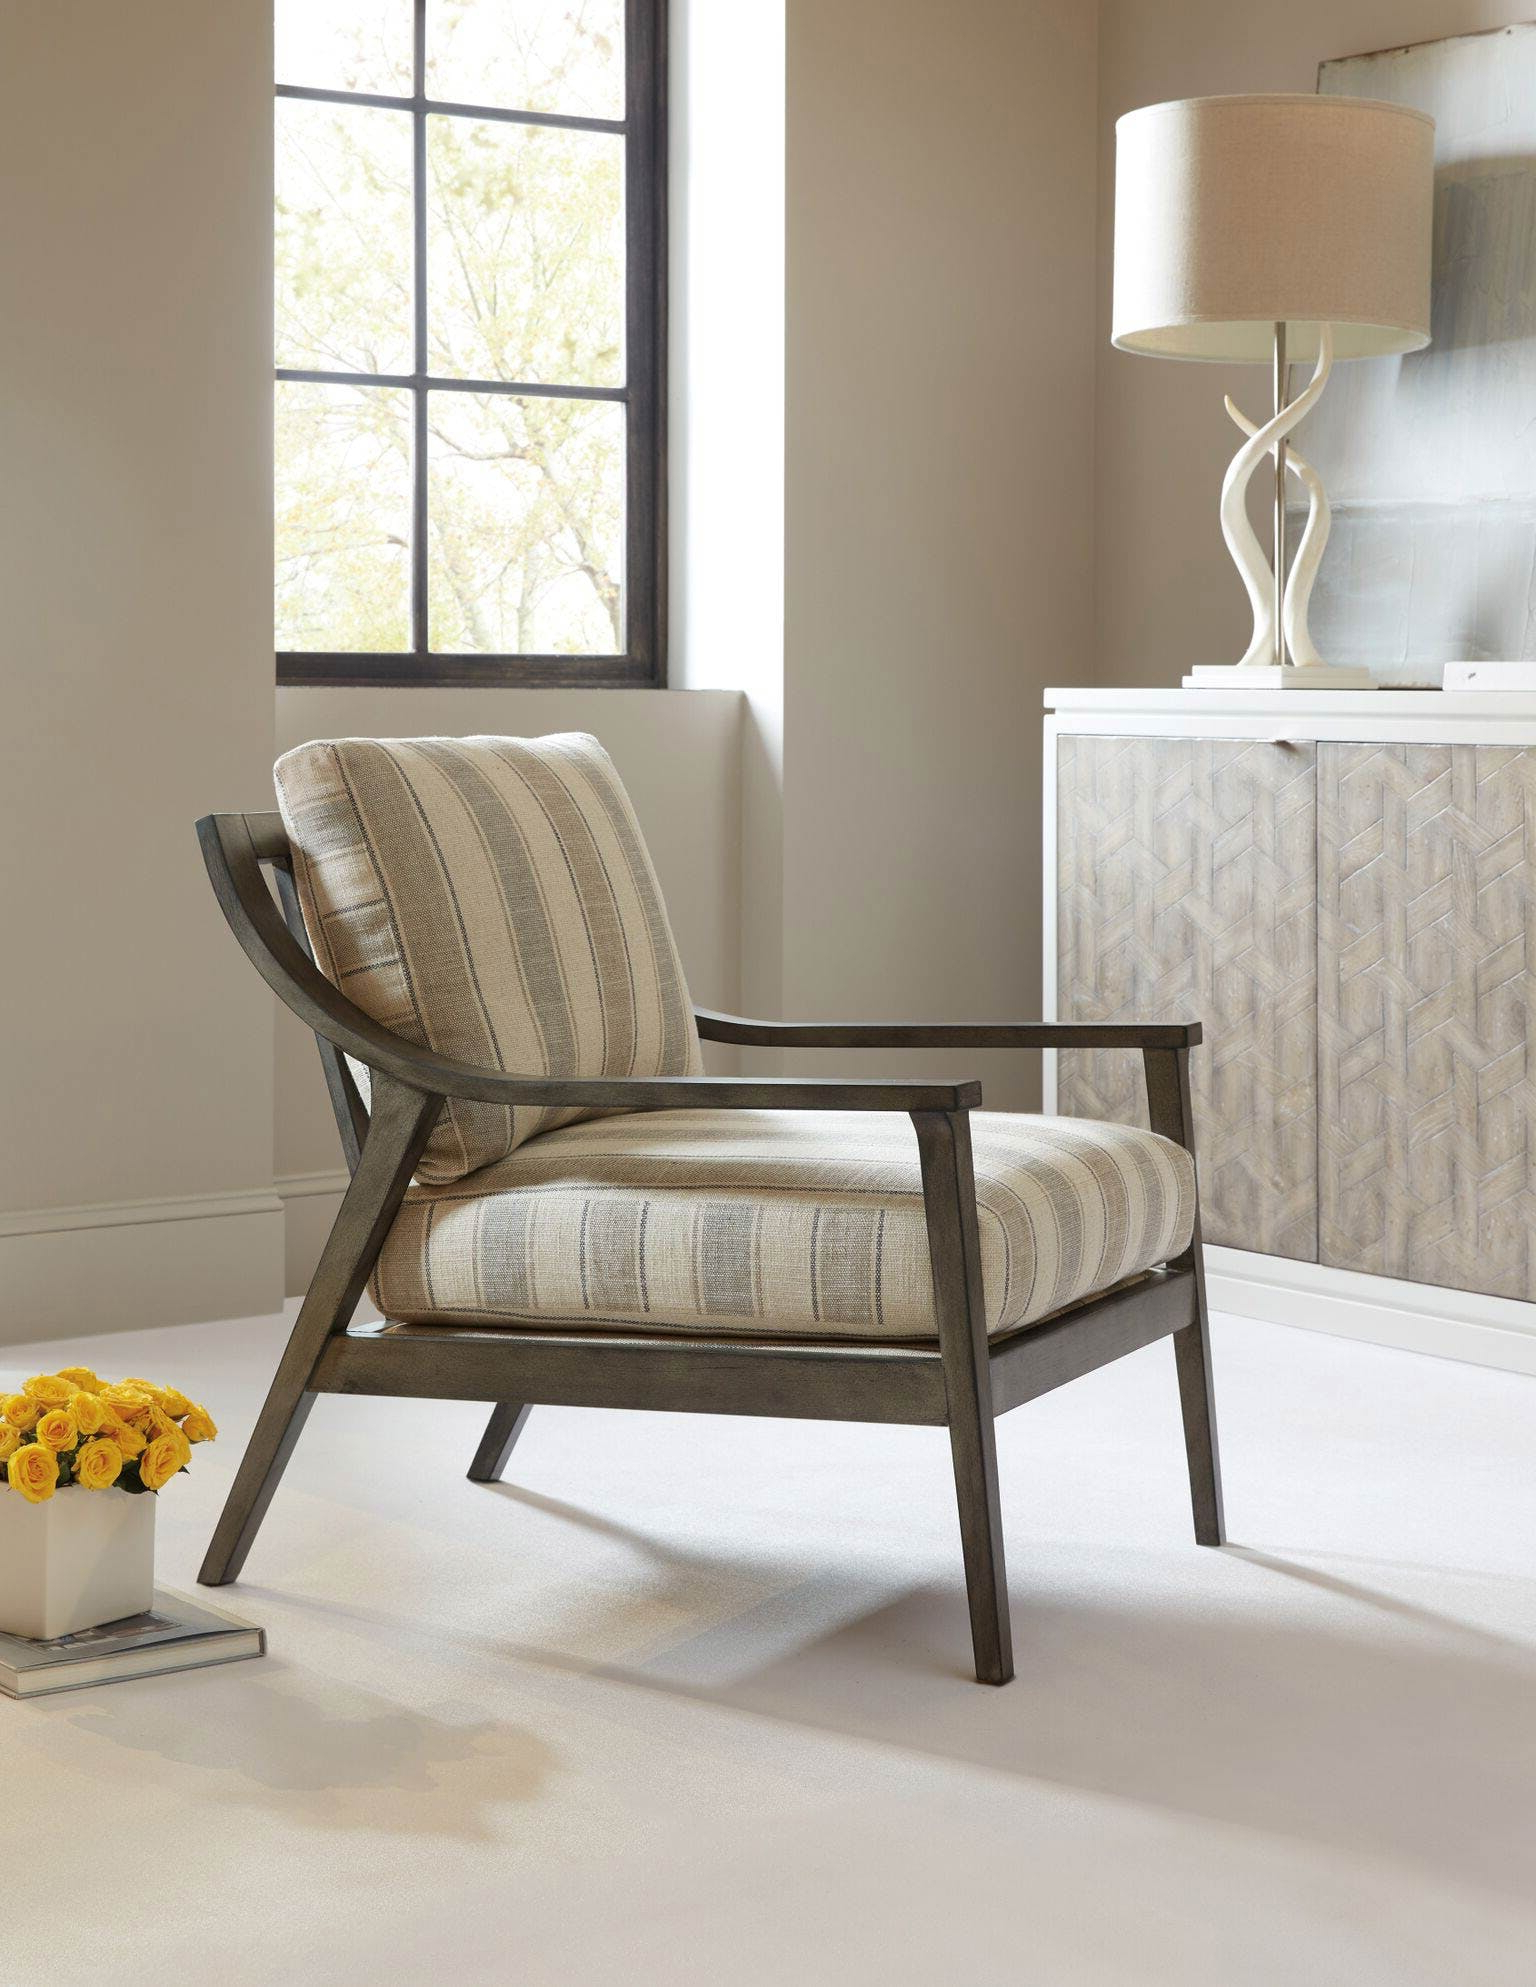 Gibson Swivel Cuddler Chairs Throughout 2018 Updated Classics & Trendy Transitional Home Furnishings (View 16 of 20)